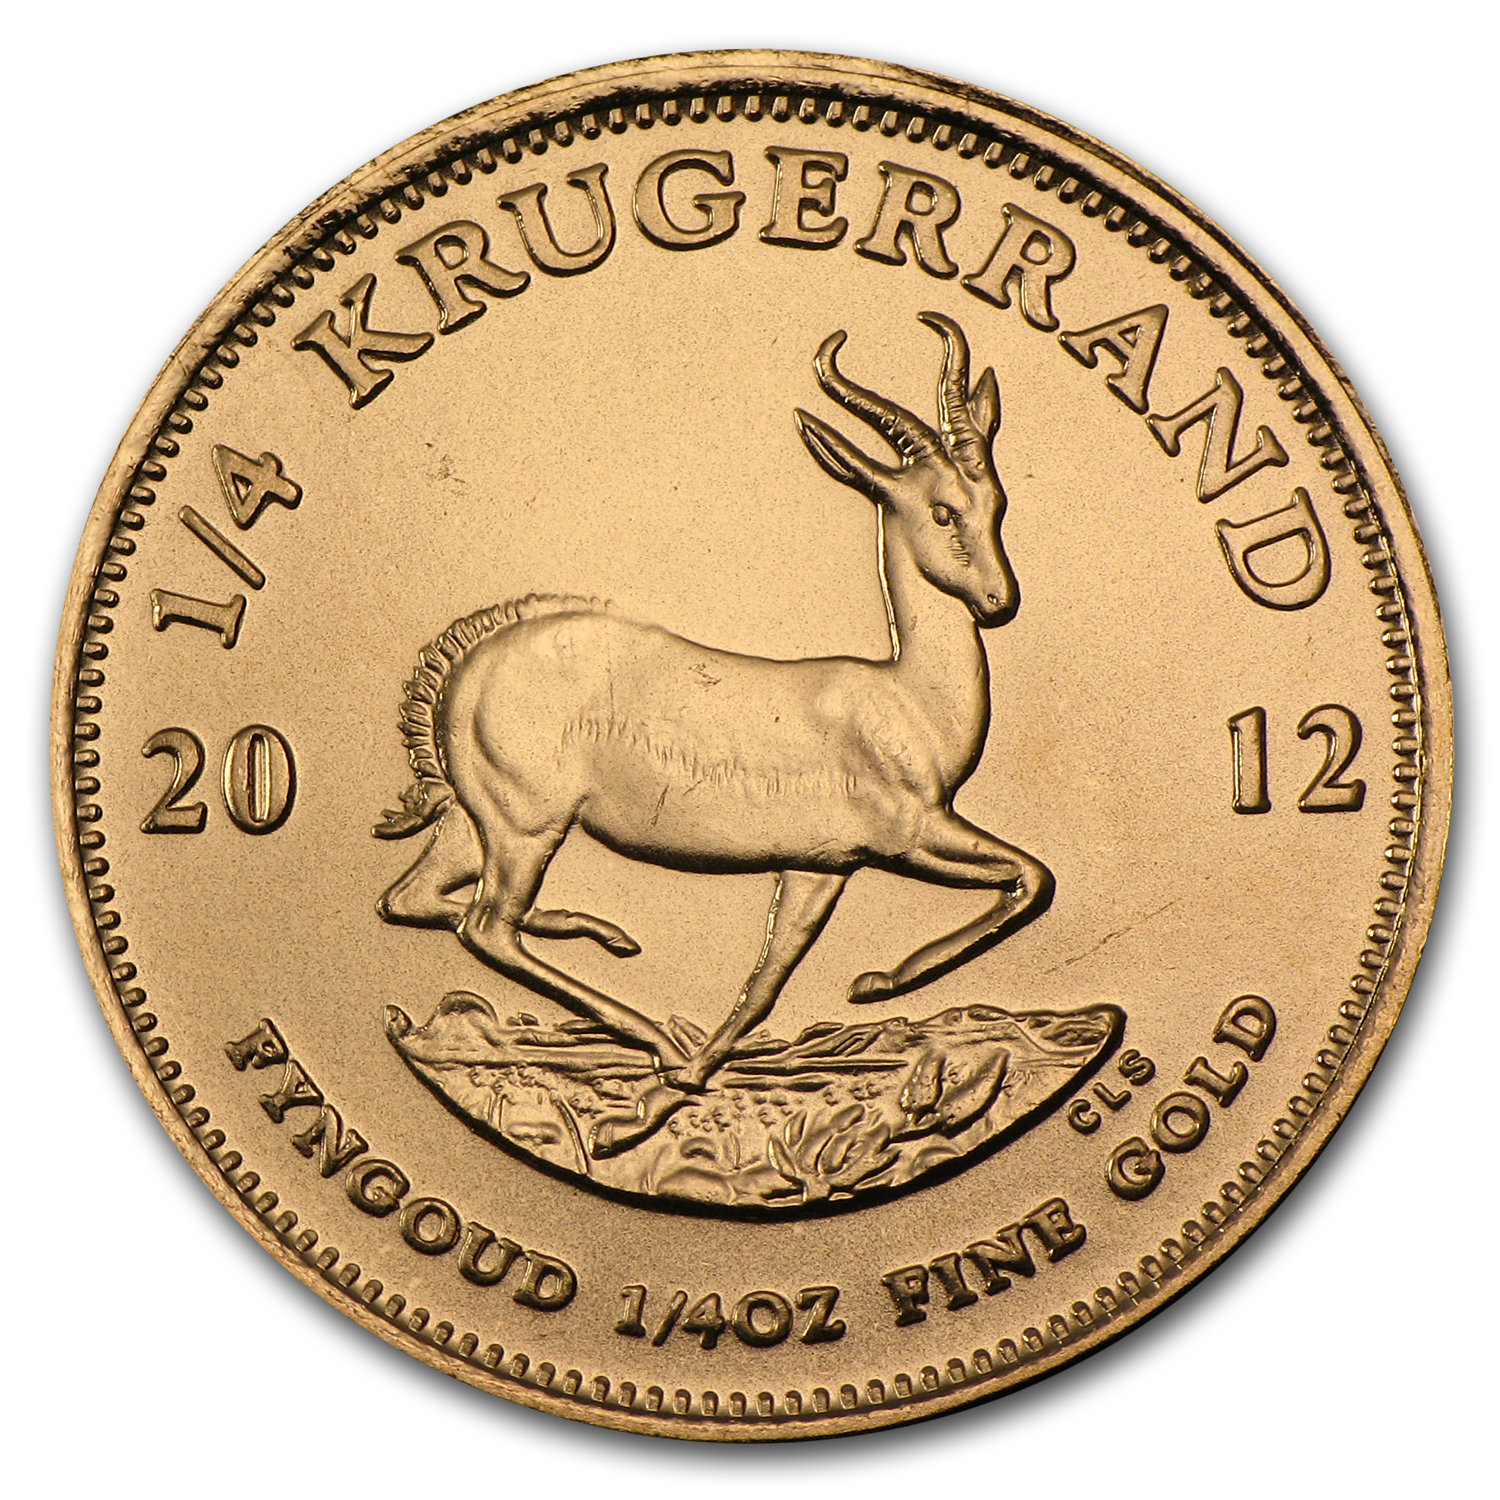 2012 South Africa 1/4 oz Gold Krugerrand